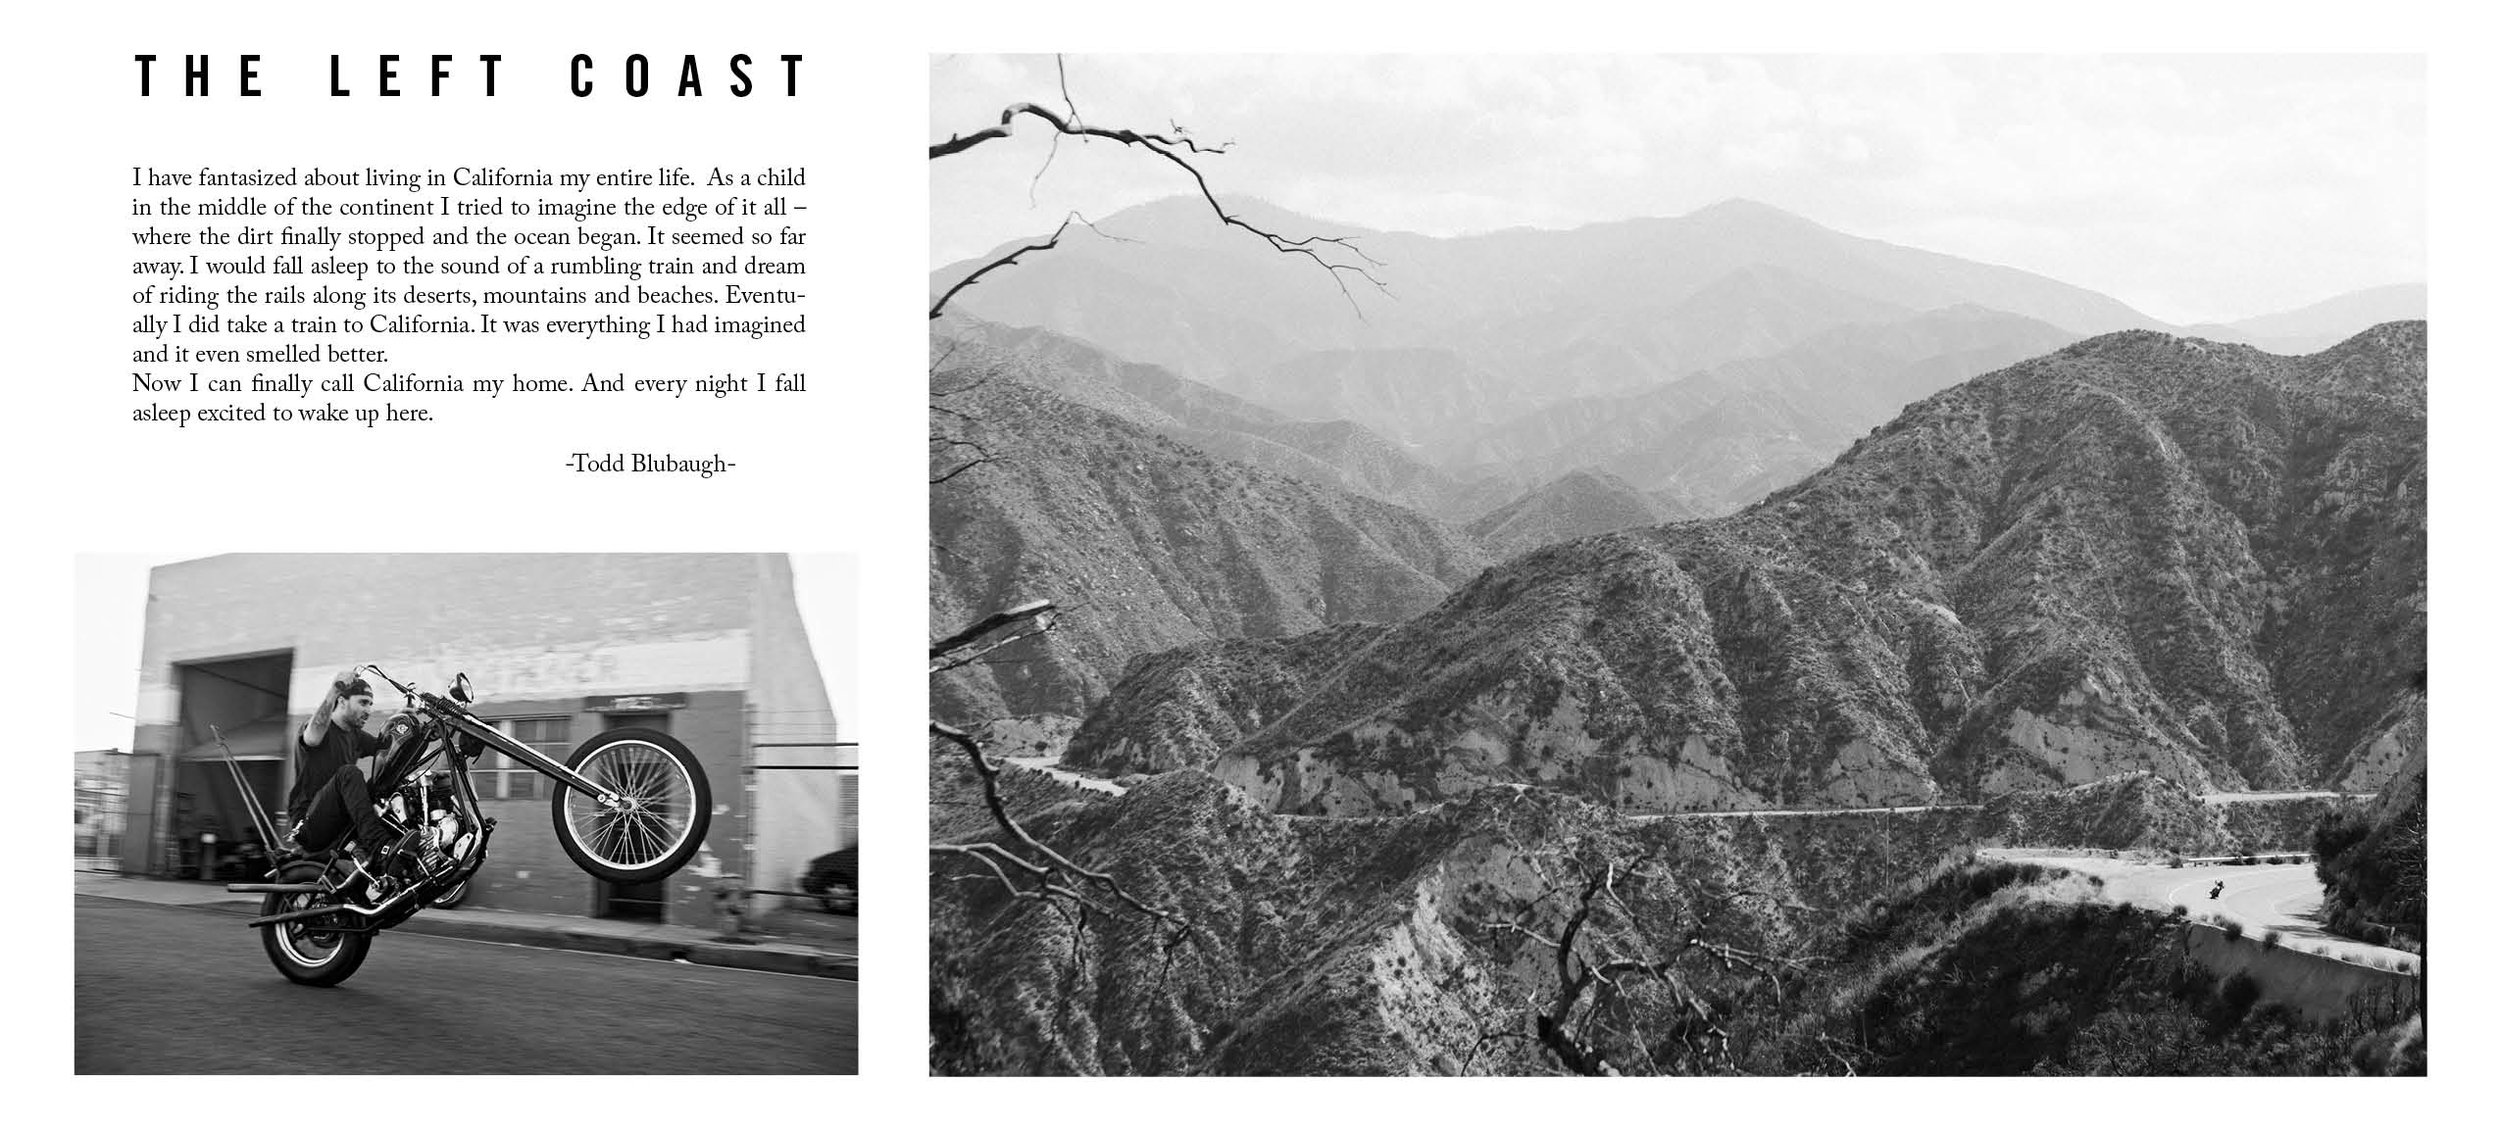 The Left Coast Final page 01.jpg